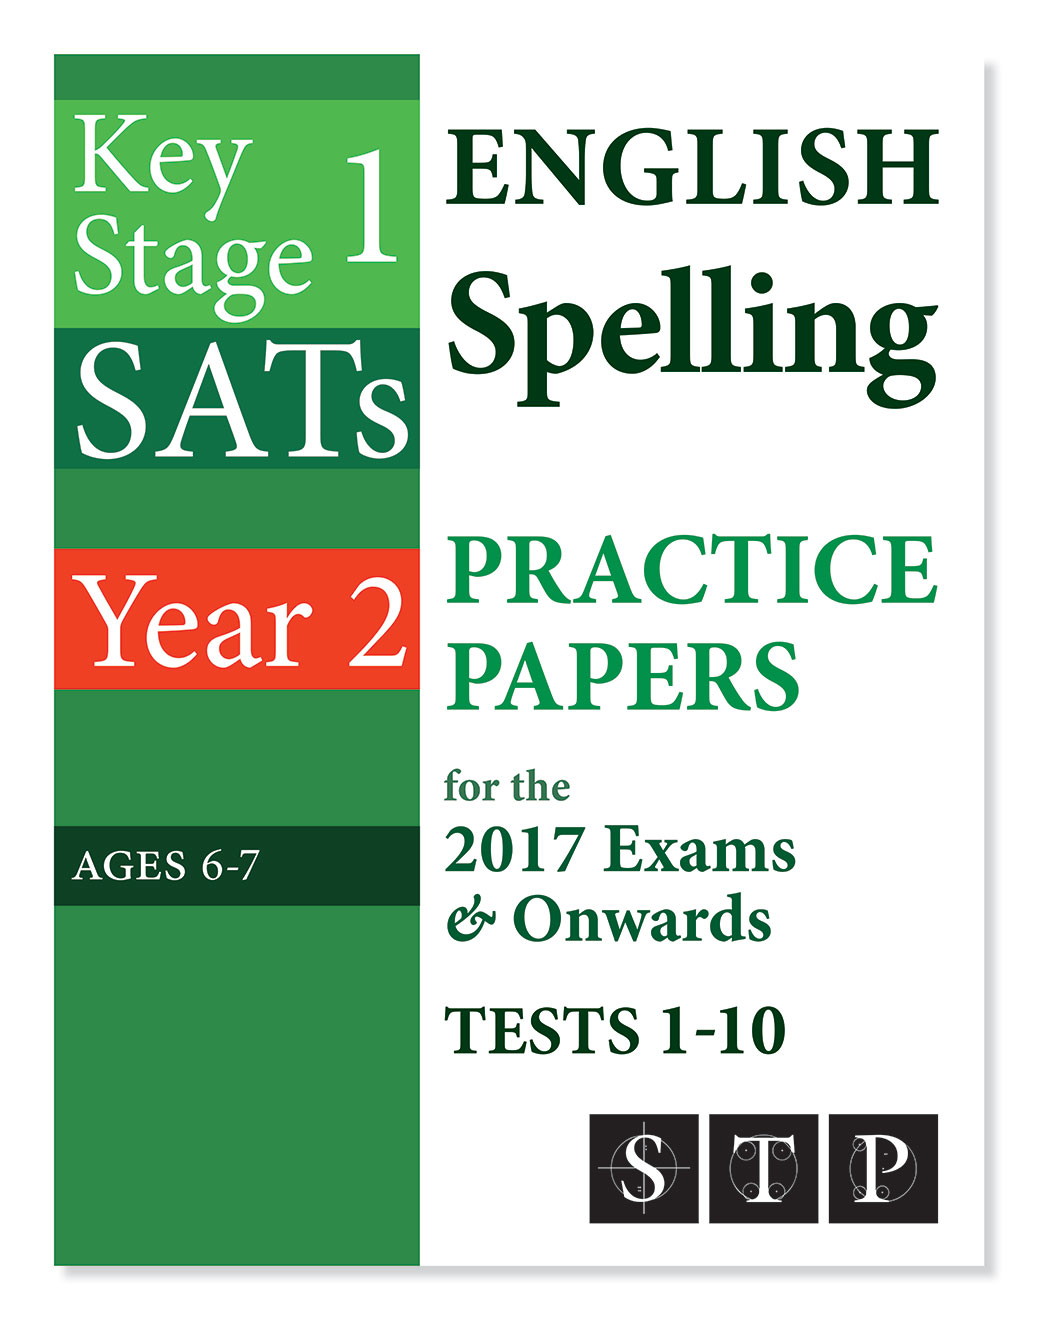 KS1 SATs English Spelling Practice Papers Tests 1-10